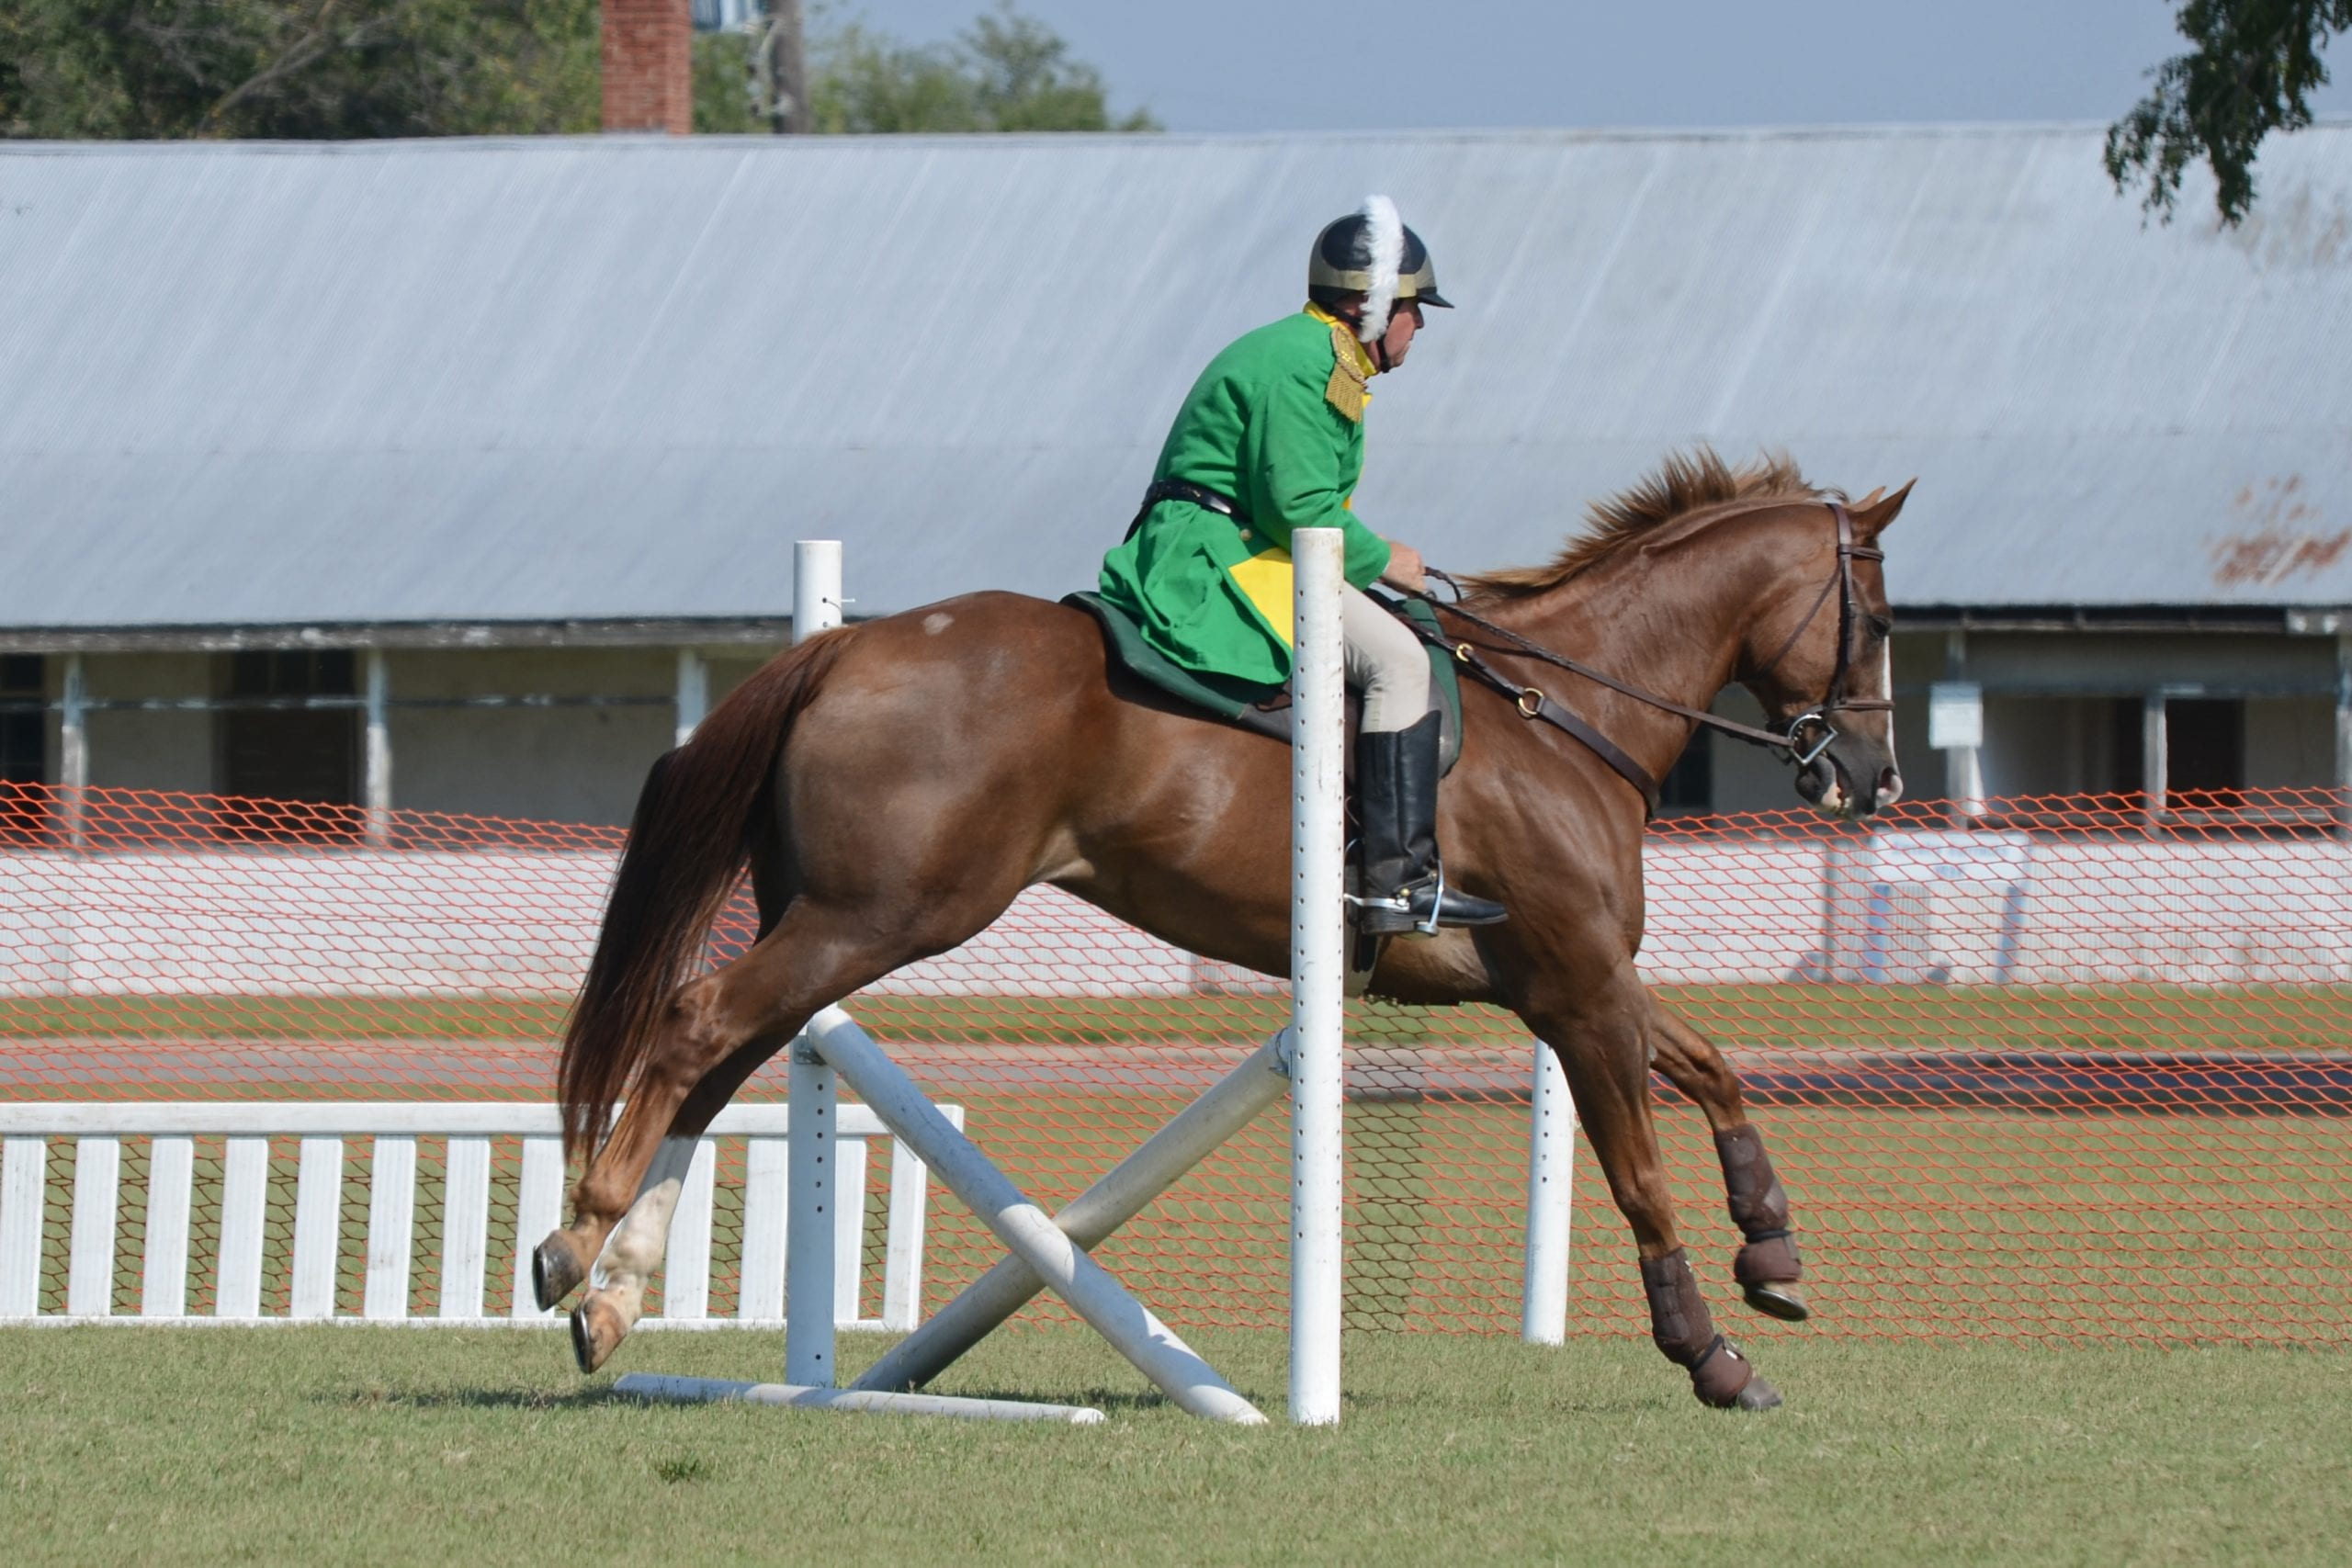 horse and rider going over a hurdle